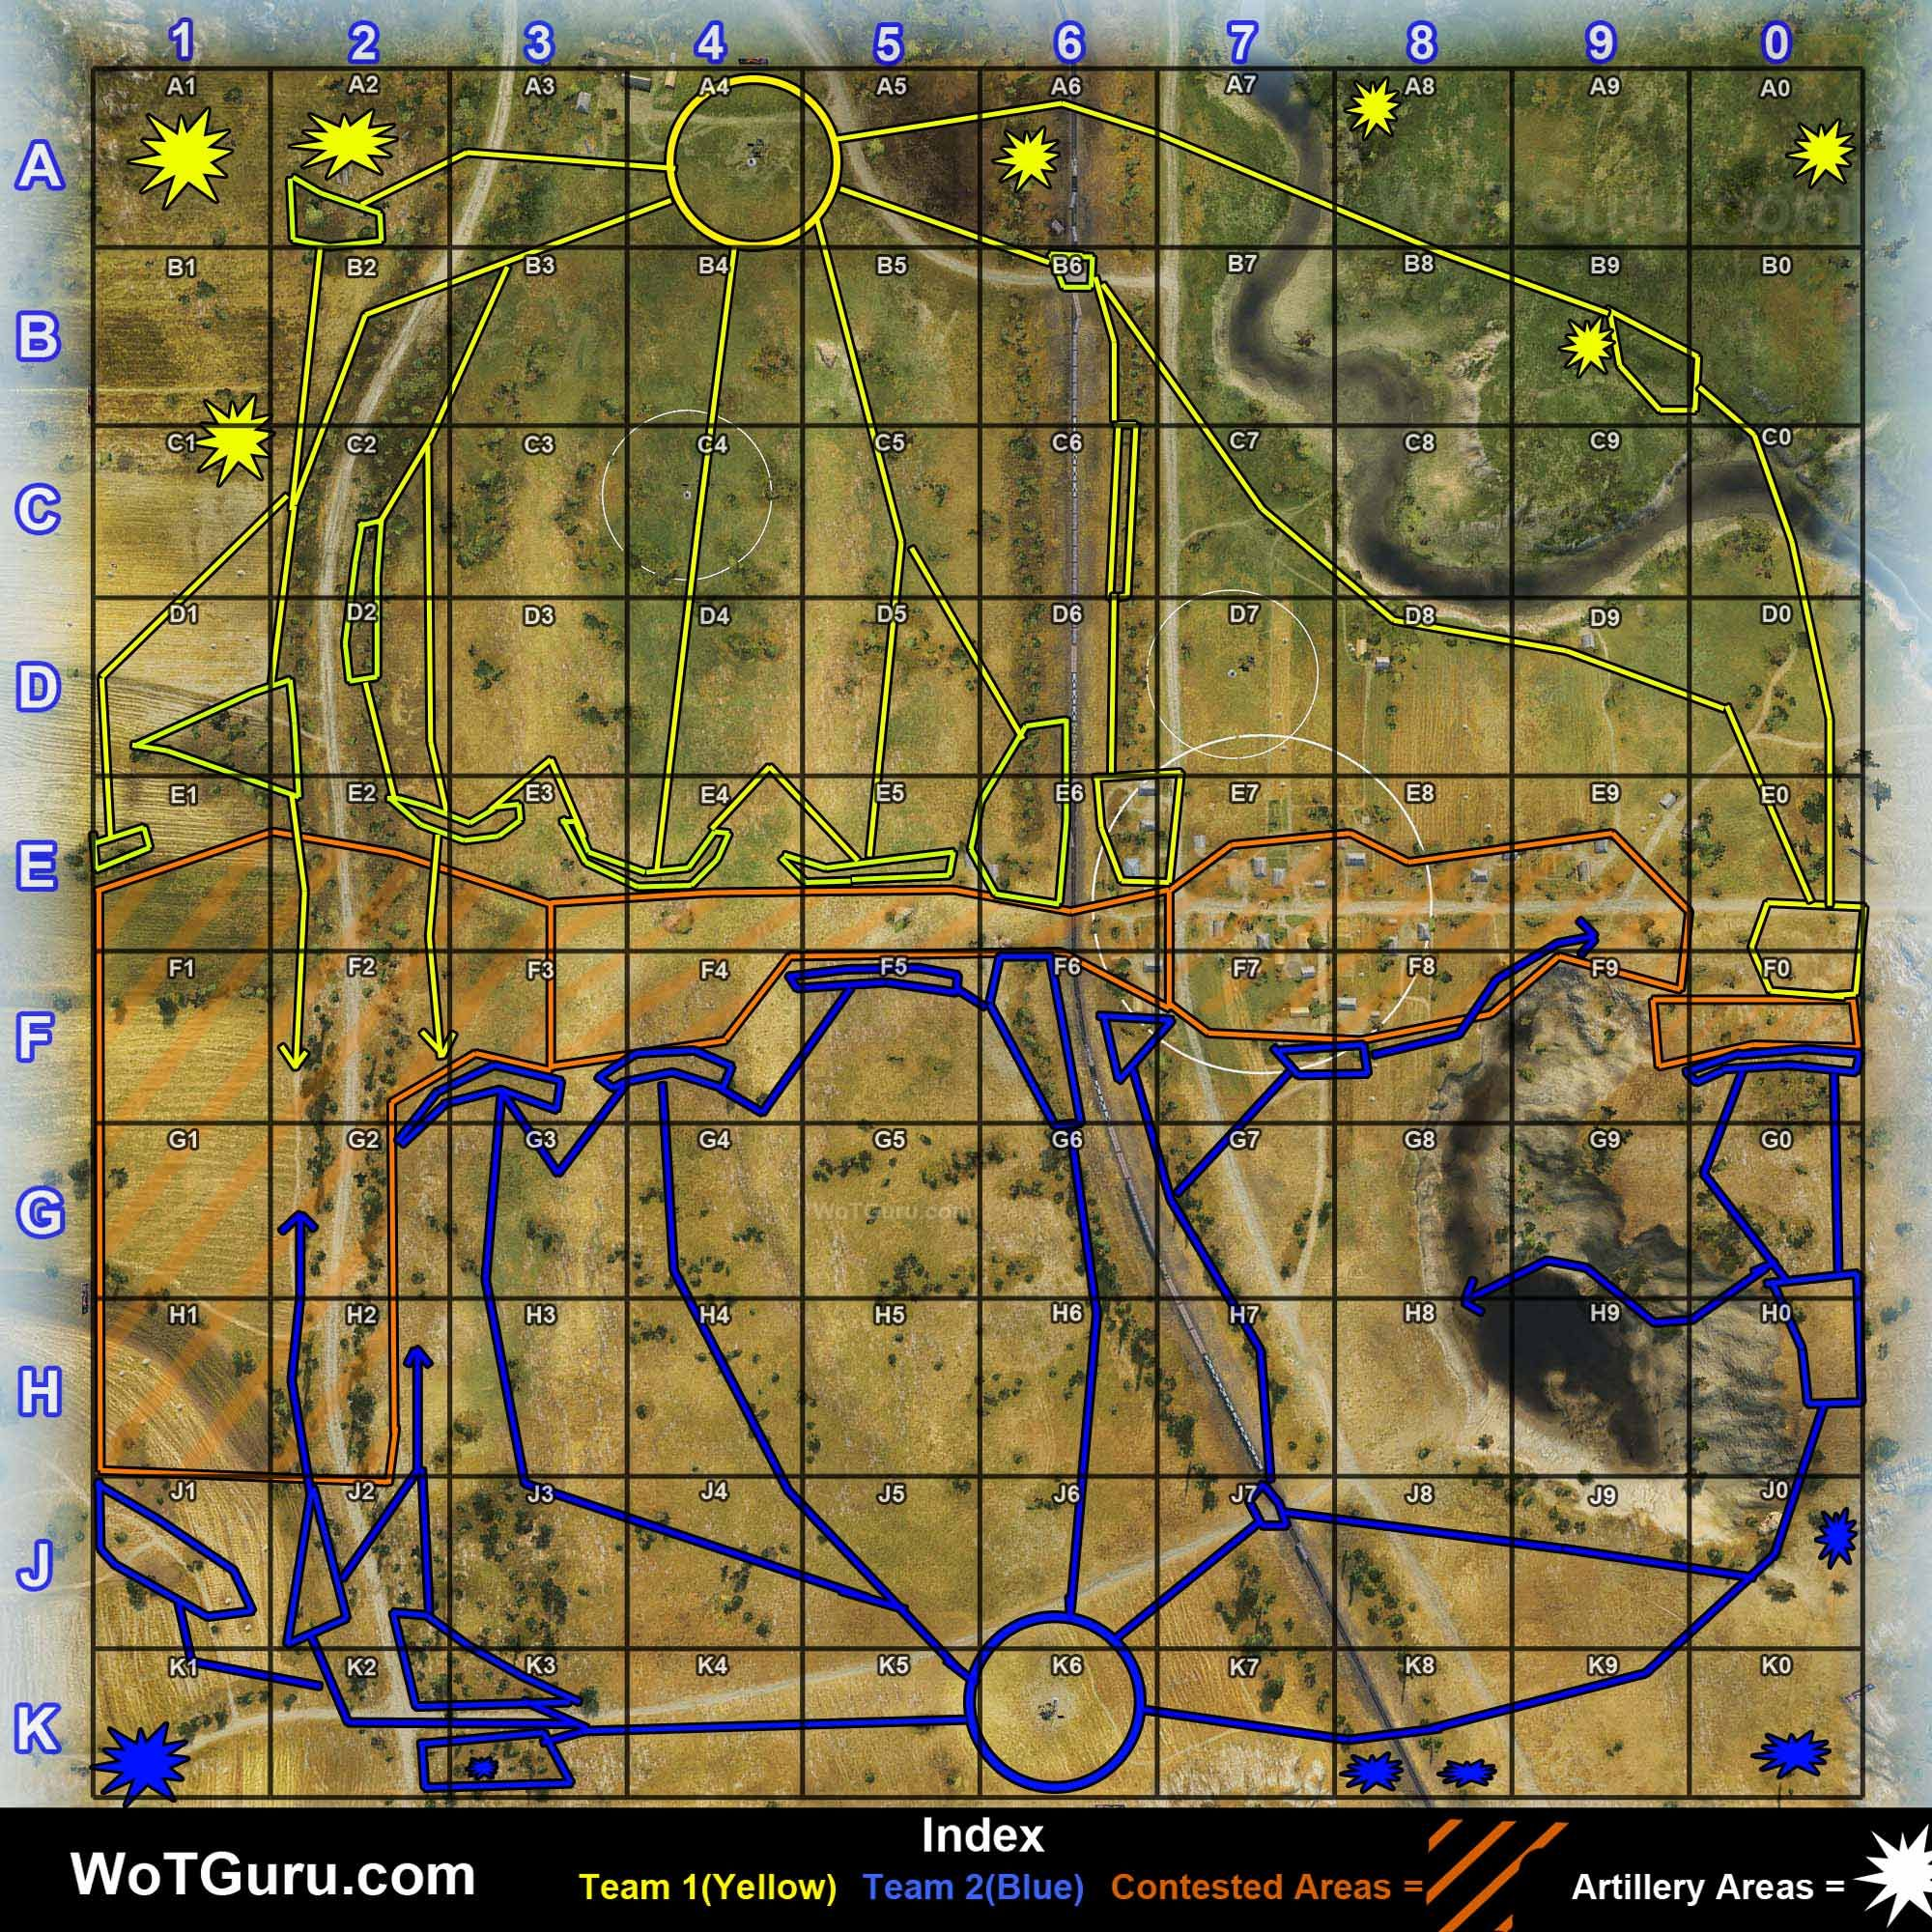 Mapstrategyprohorovka2 wot pinterest key a collection of world of tanks map strategy guides tailored for specific maps each guide will outline key areas routes and tactics to use gumiabroncs Choice Image